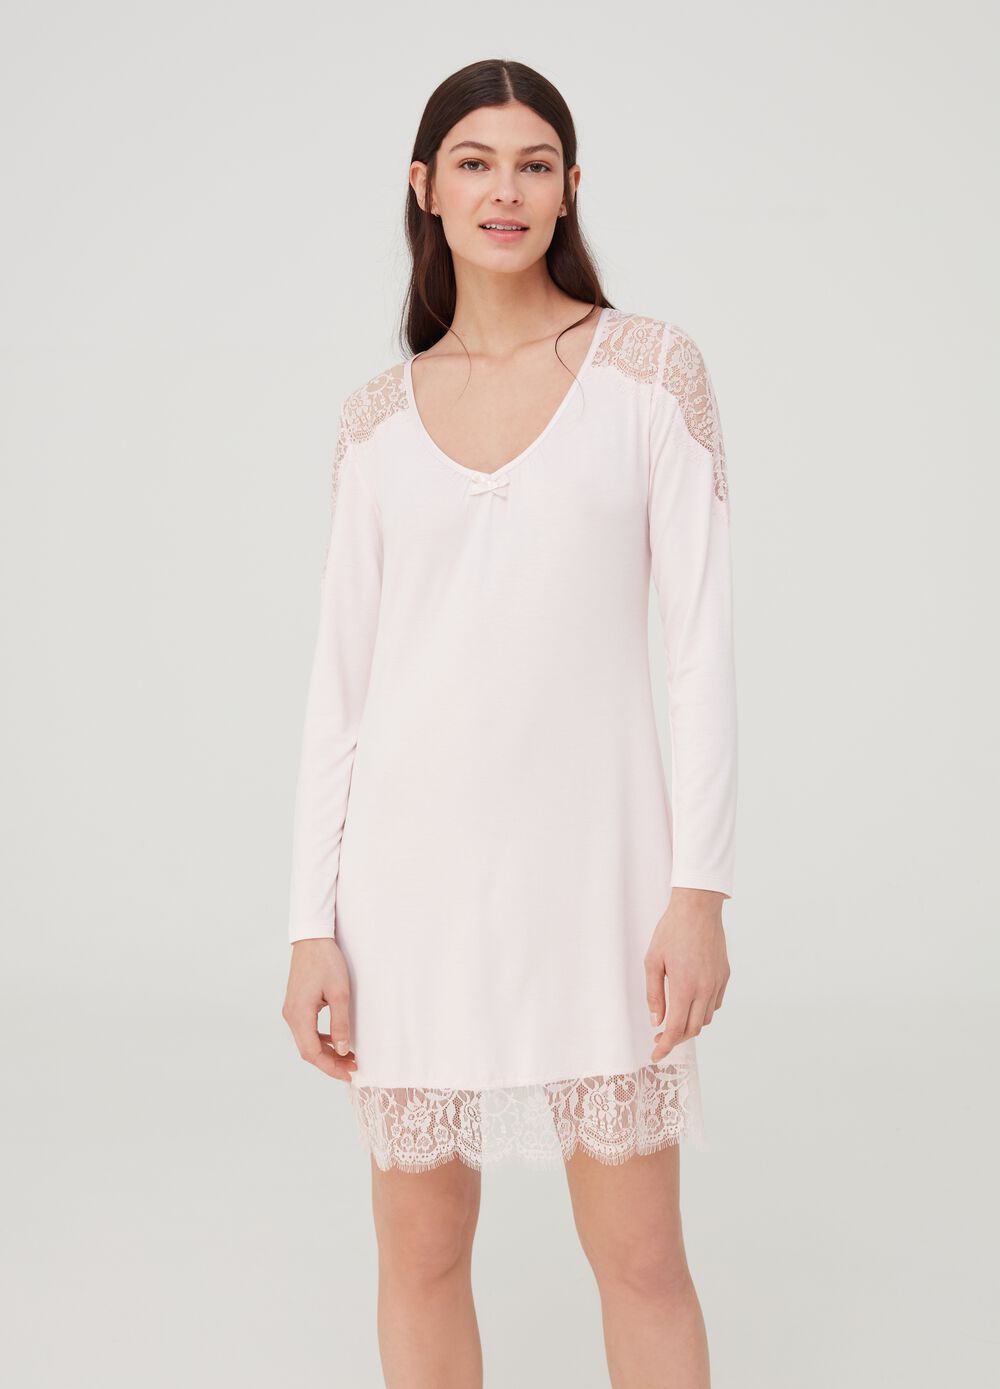 Nightshirt with lace inserts